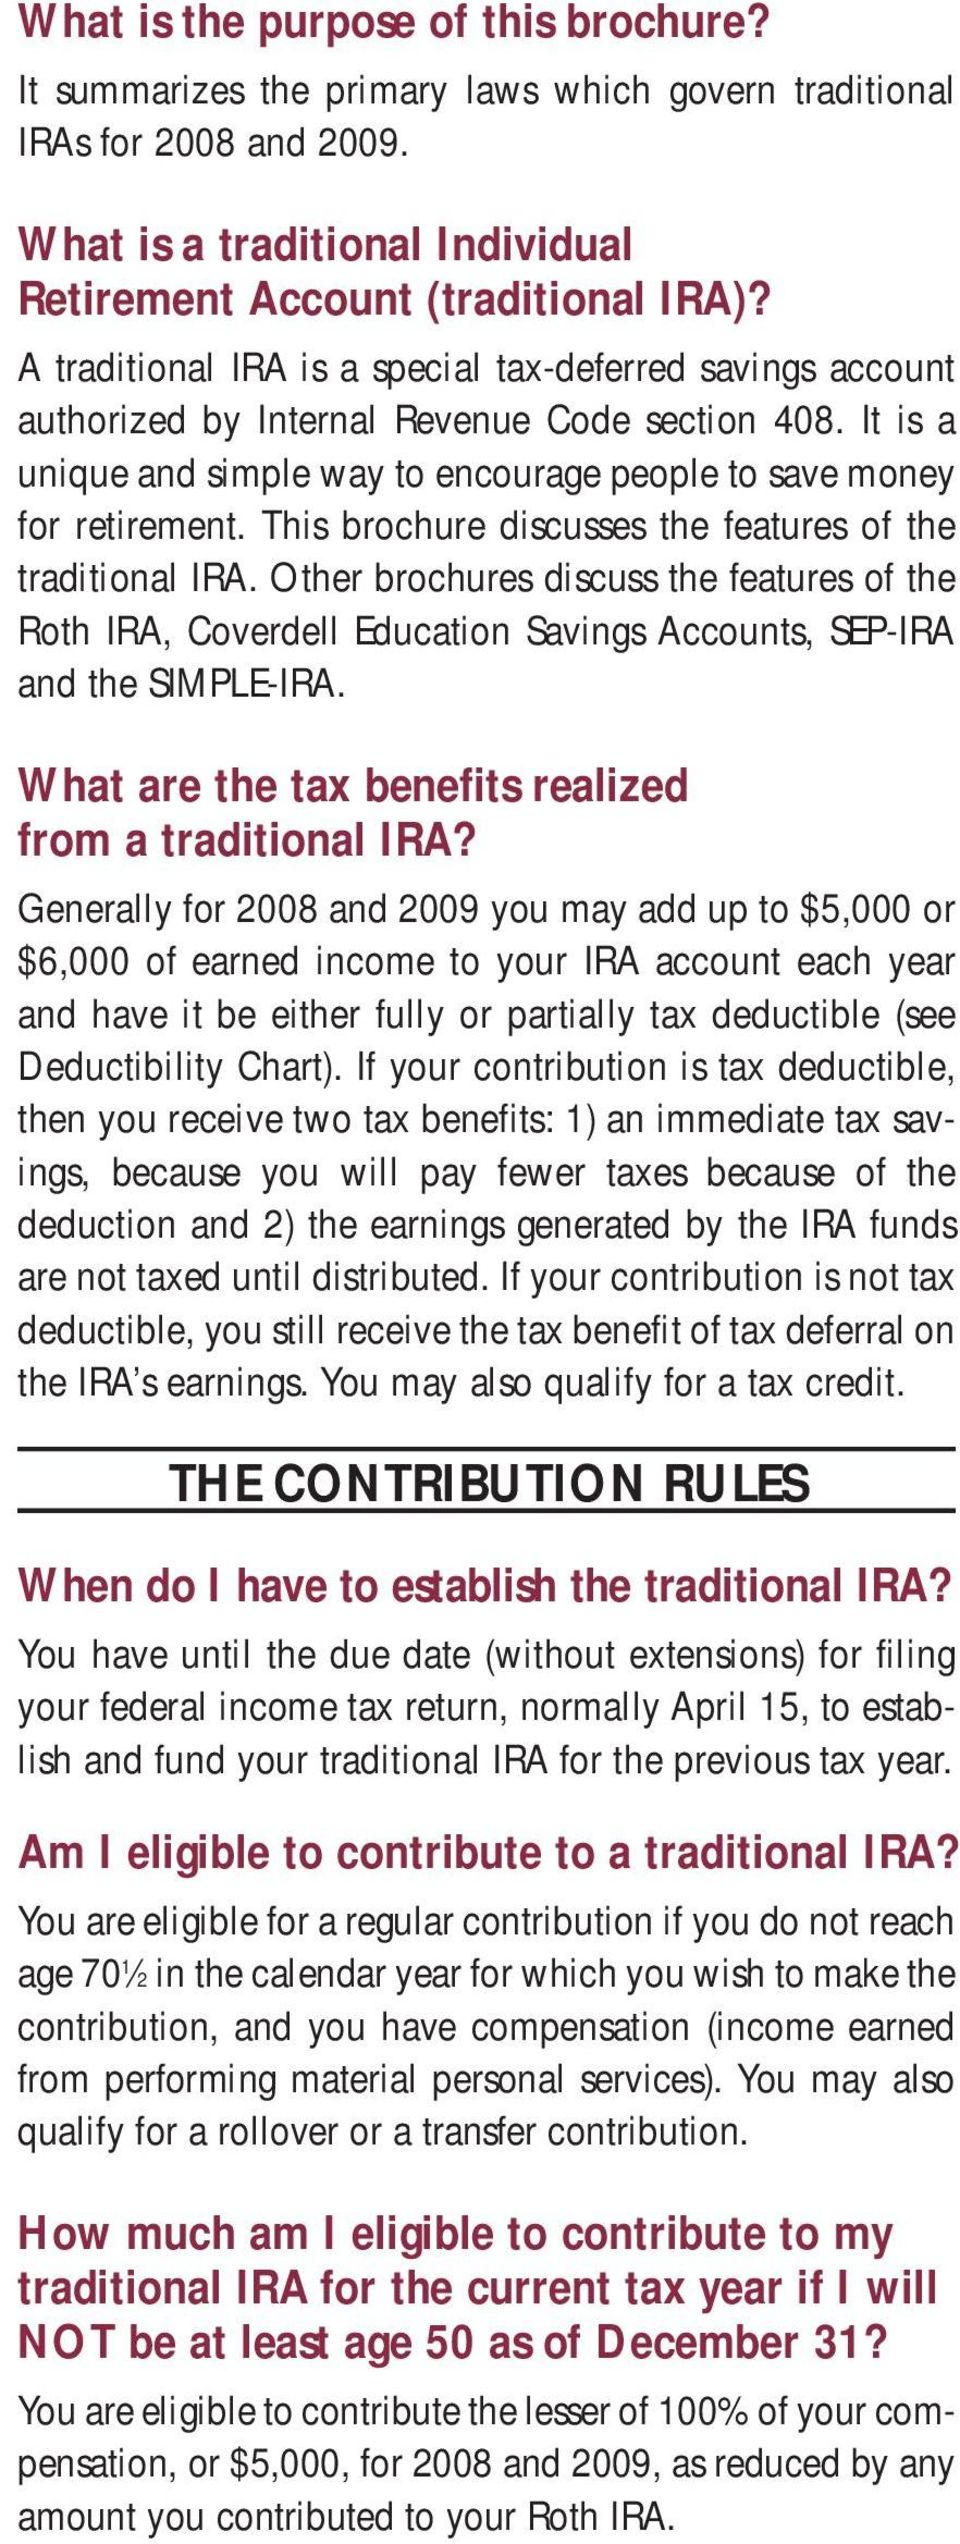 This brochure discusses the features of the traditional IRA. Other brochures discuss the features of the Roth IRA, Coverdell Education Savings Accounts, SEP-IRA and the SIMPLE-IRA.